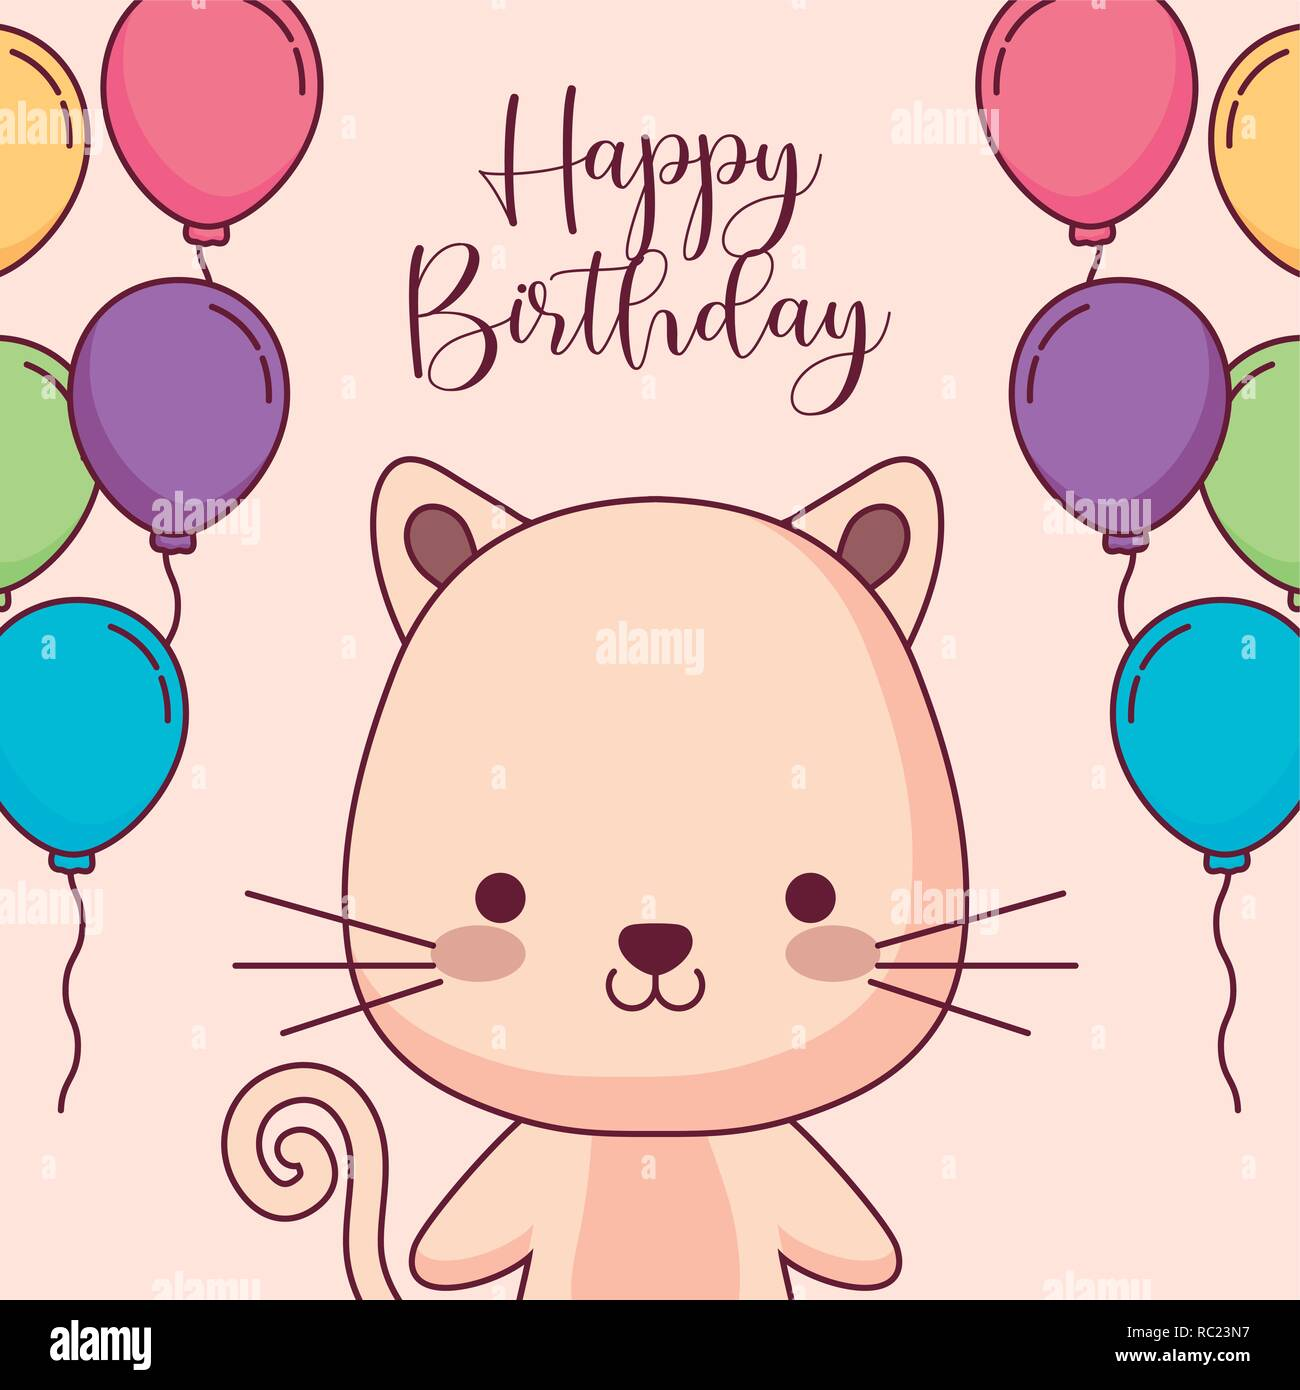 Cute Cat Happy Birthday Card With Balloons Helium Vector Illustration Design